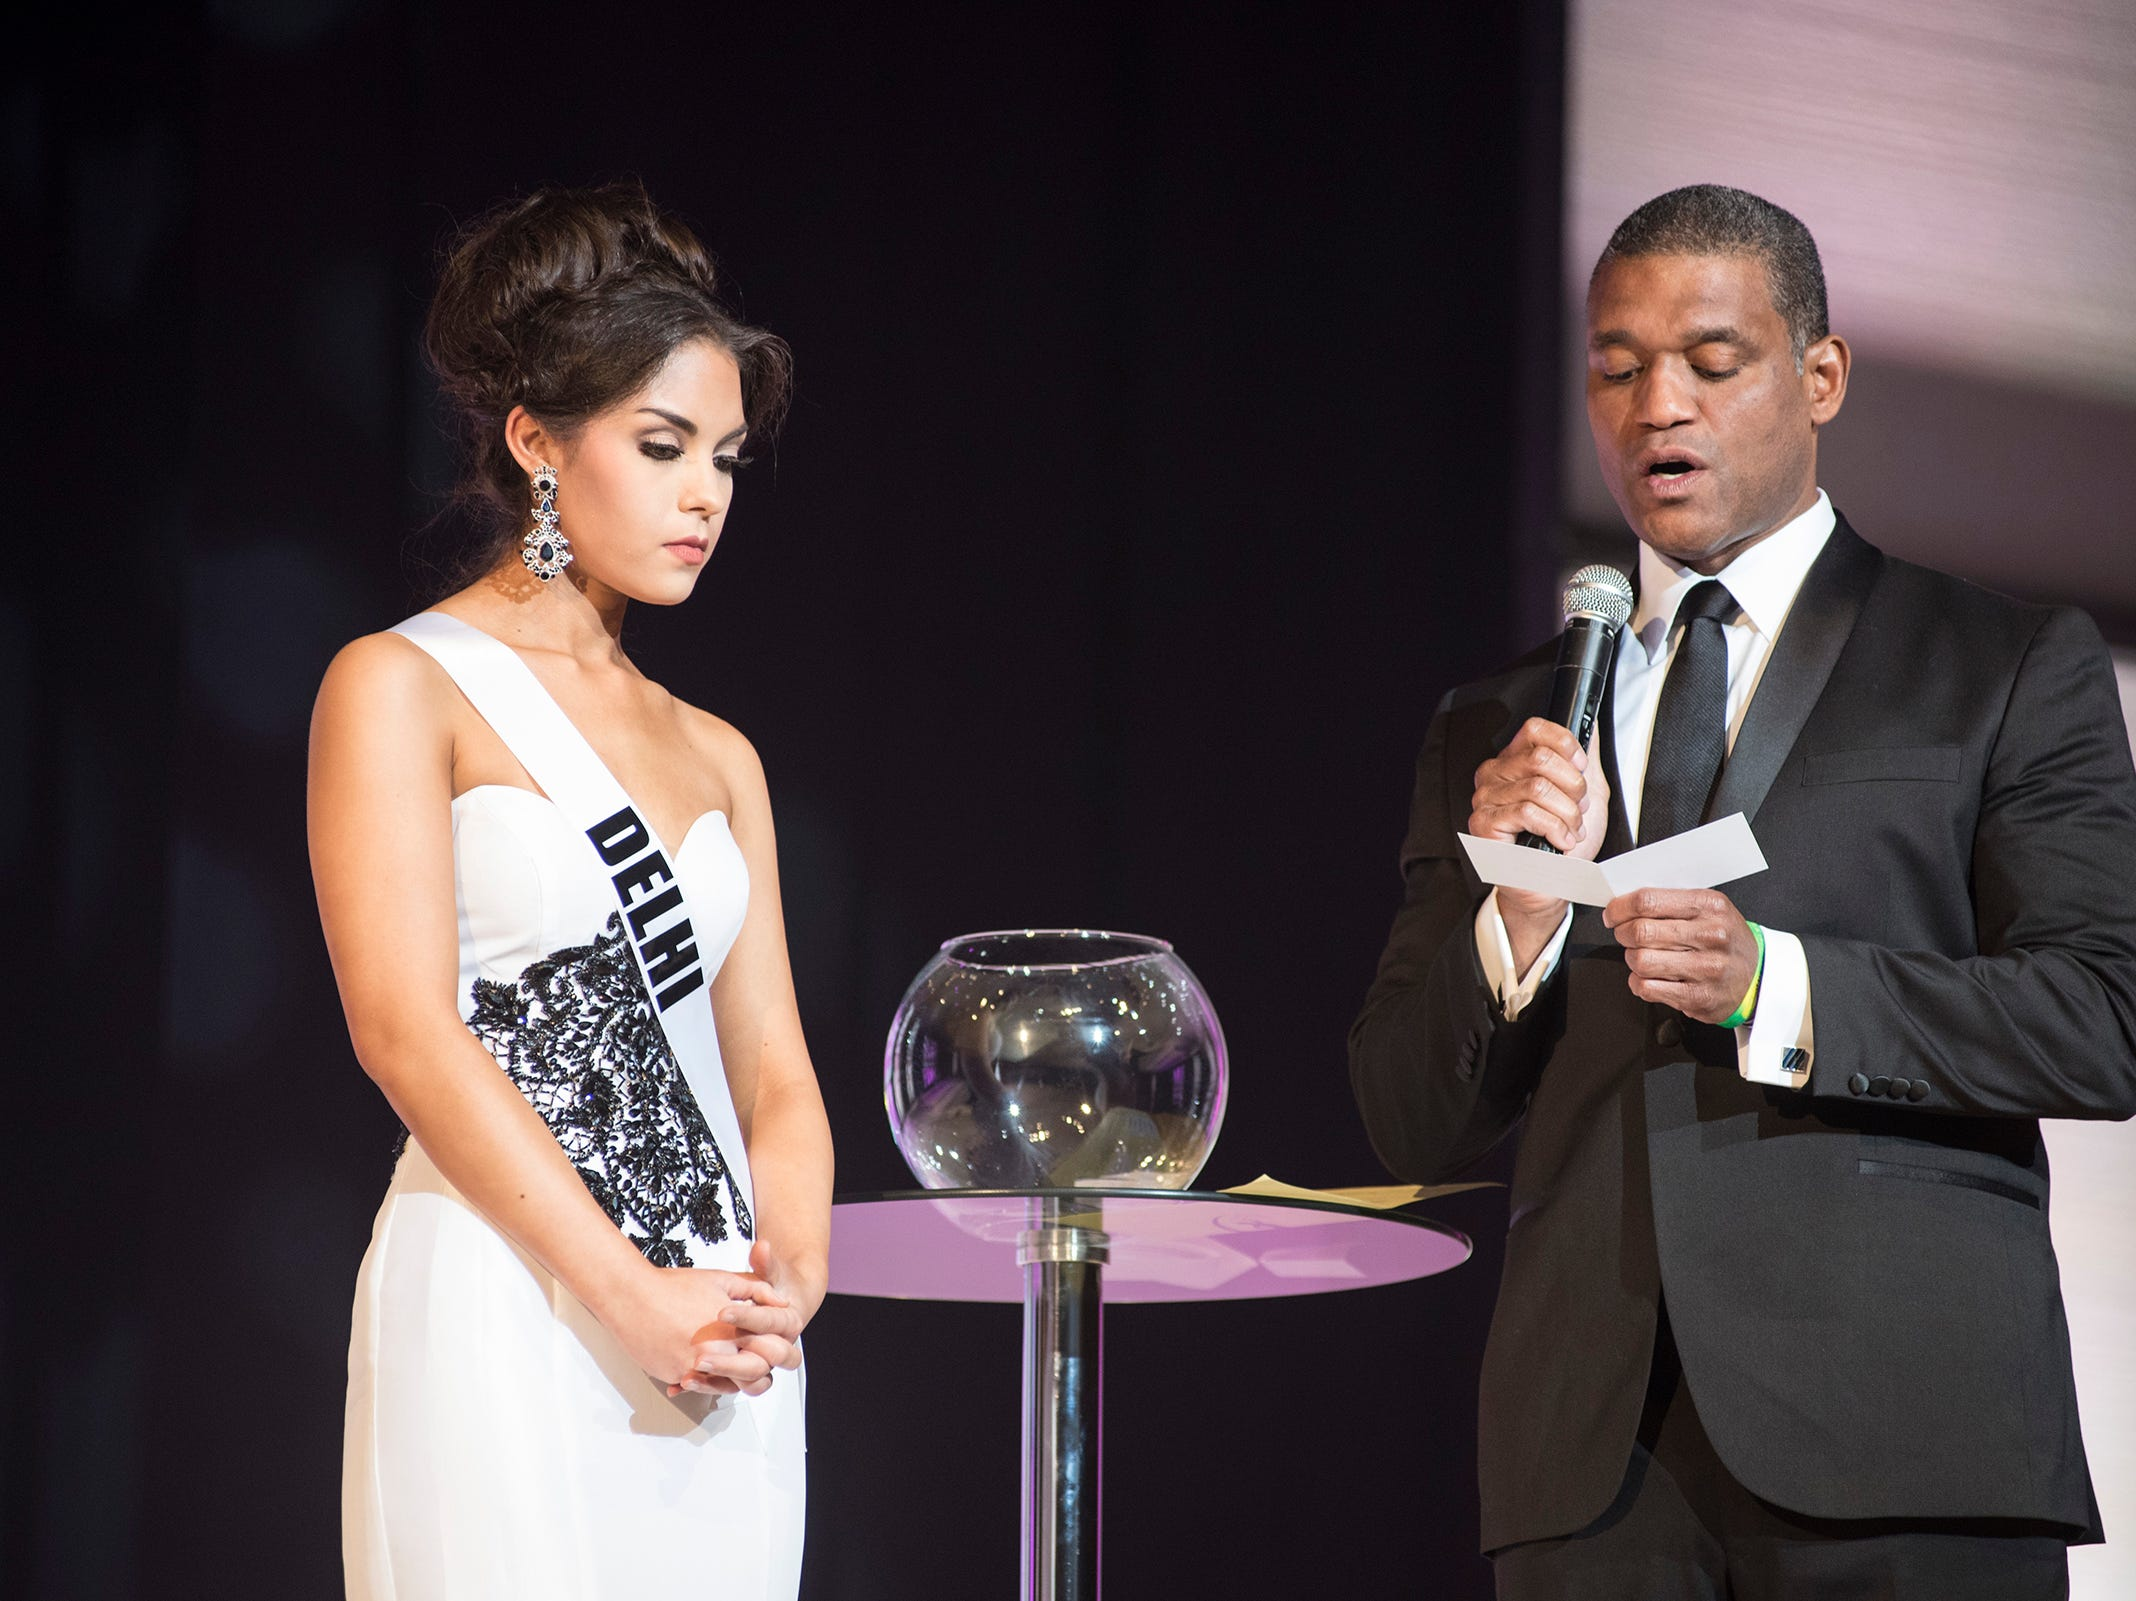 Miss Delhi Victoria Davis, left, is questioned by Cincinnati TV personality Rob Williams Saturday, Sept. 22, 2018 during the final round of the Miss Michigan USA pageant at McMorran Theater.